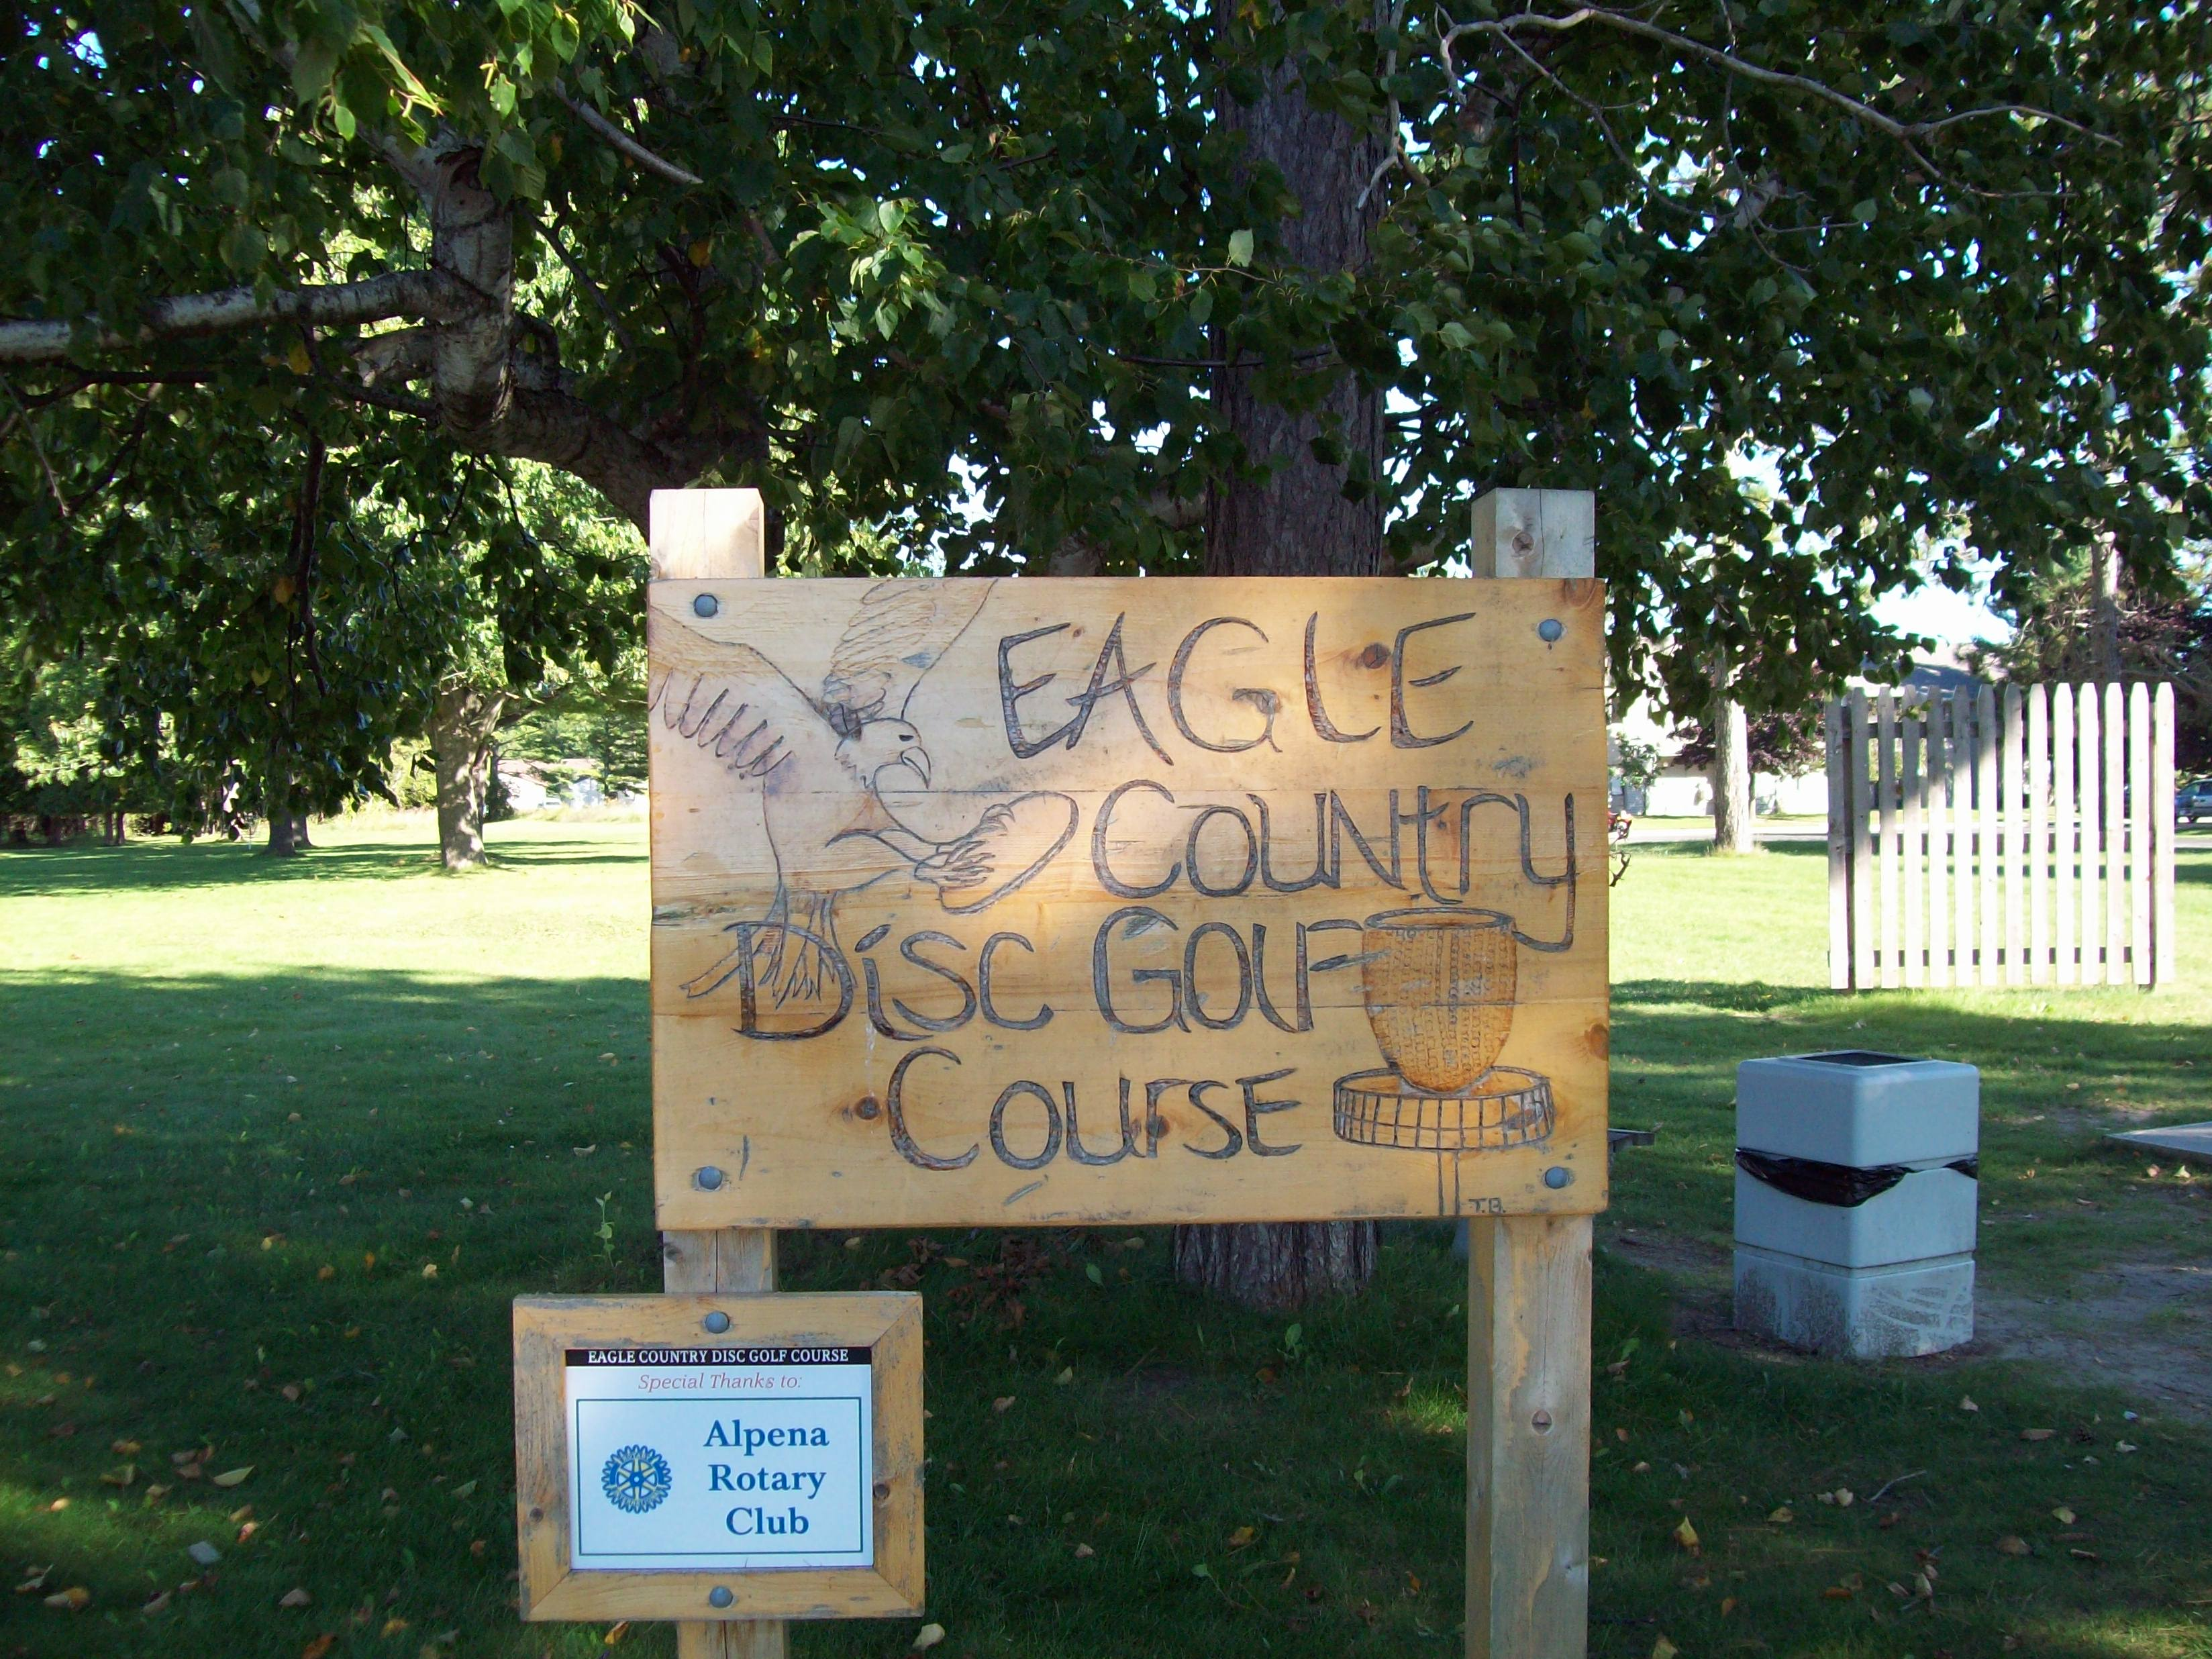 Eagle Country Disc Golf